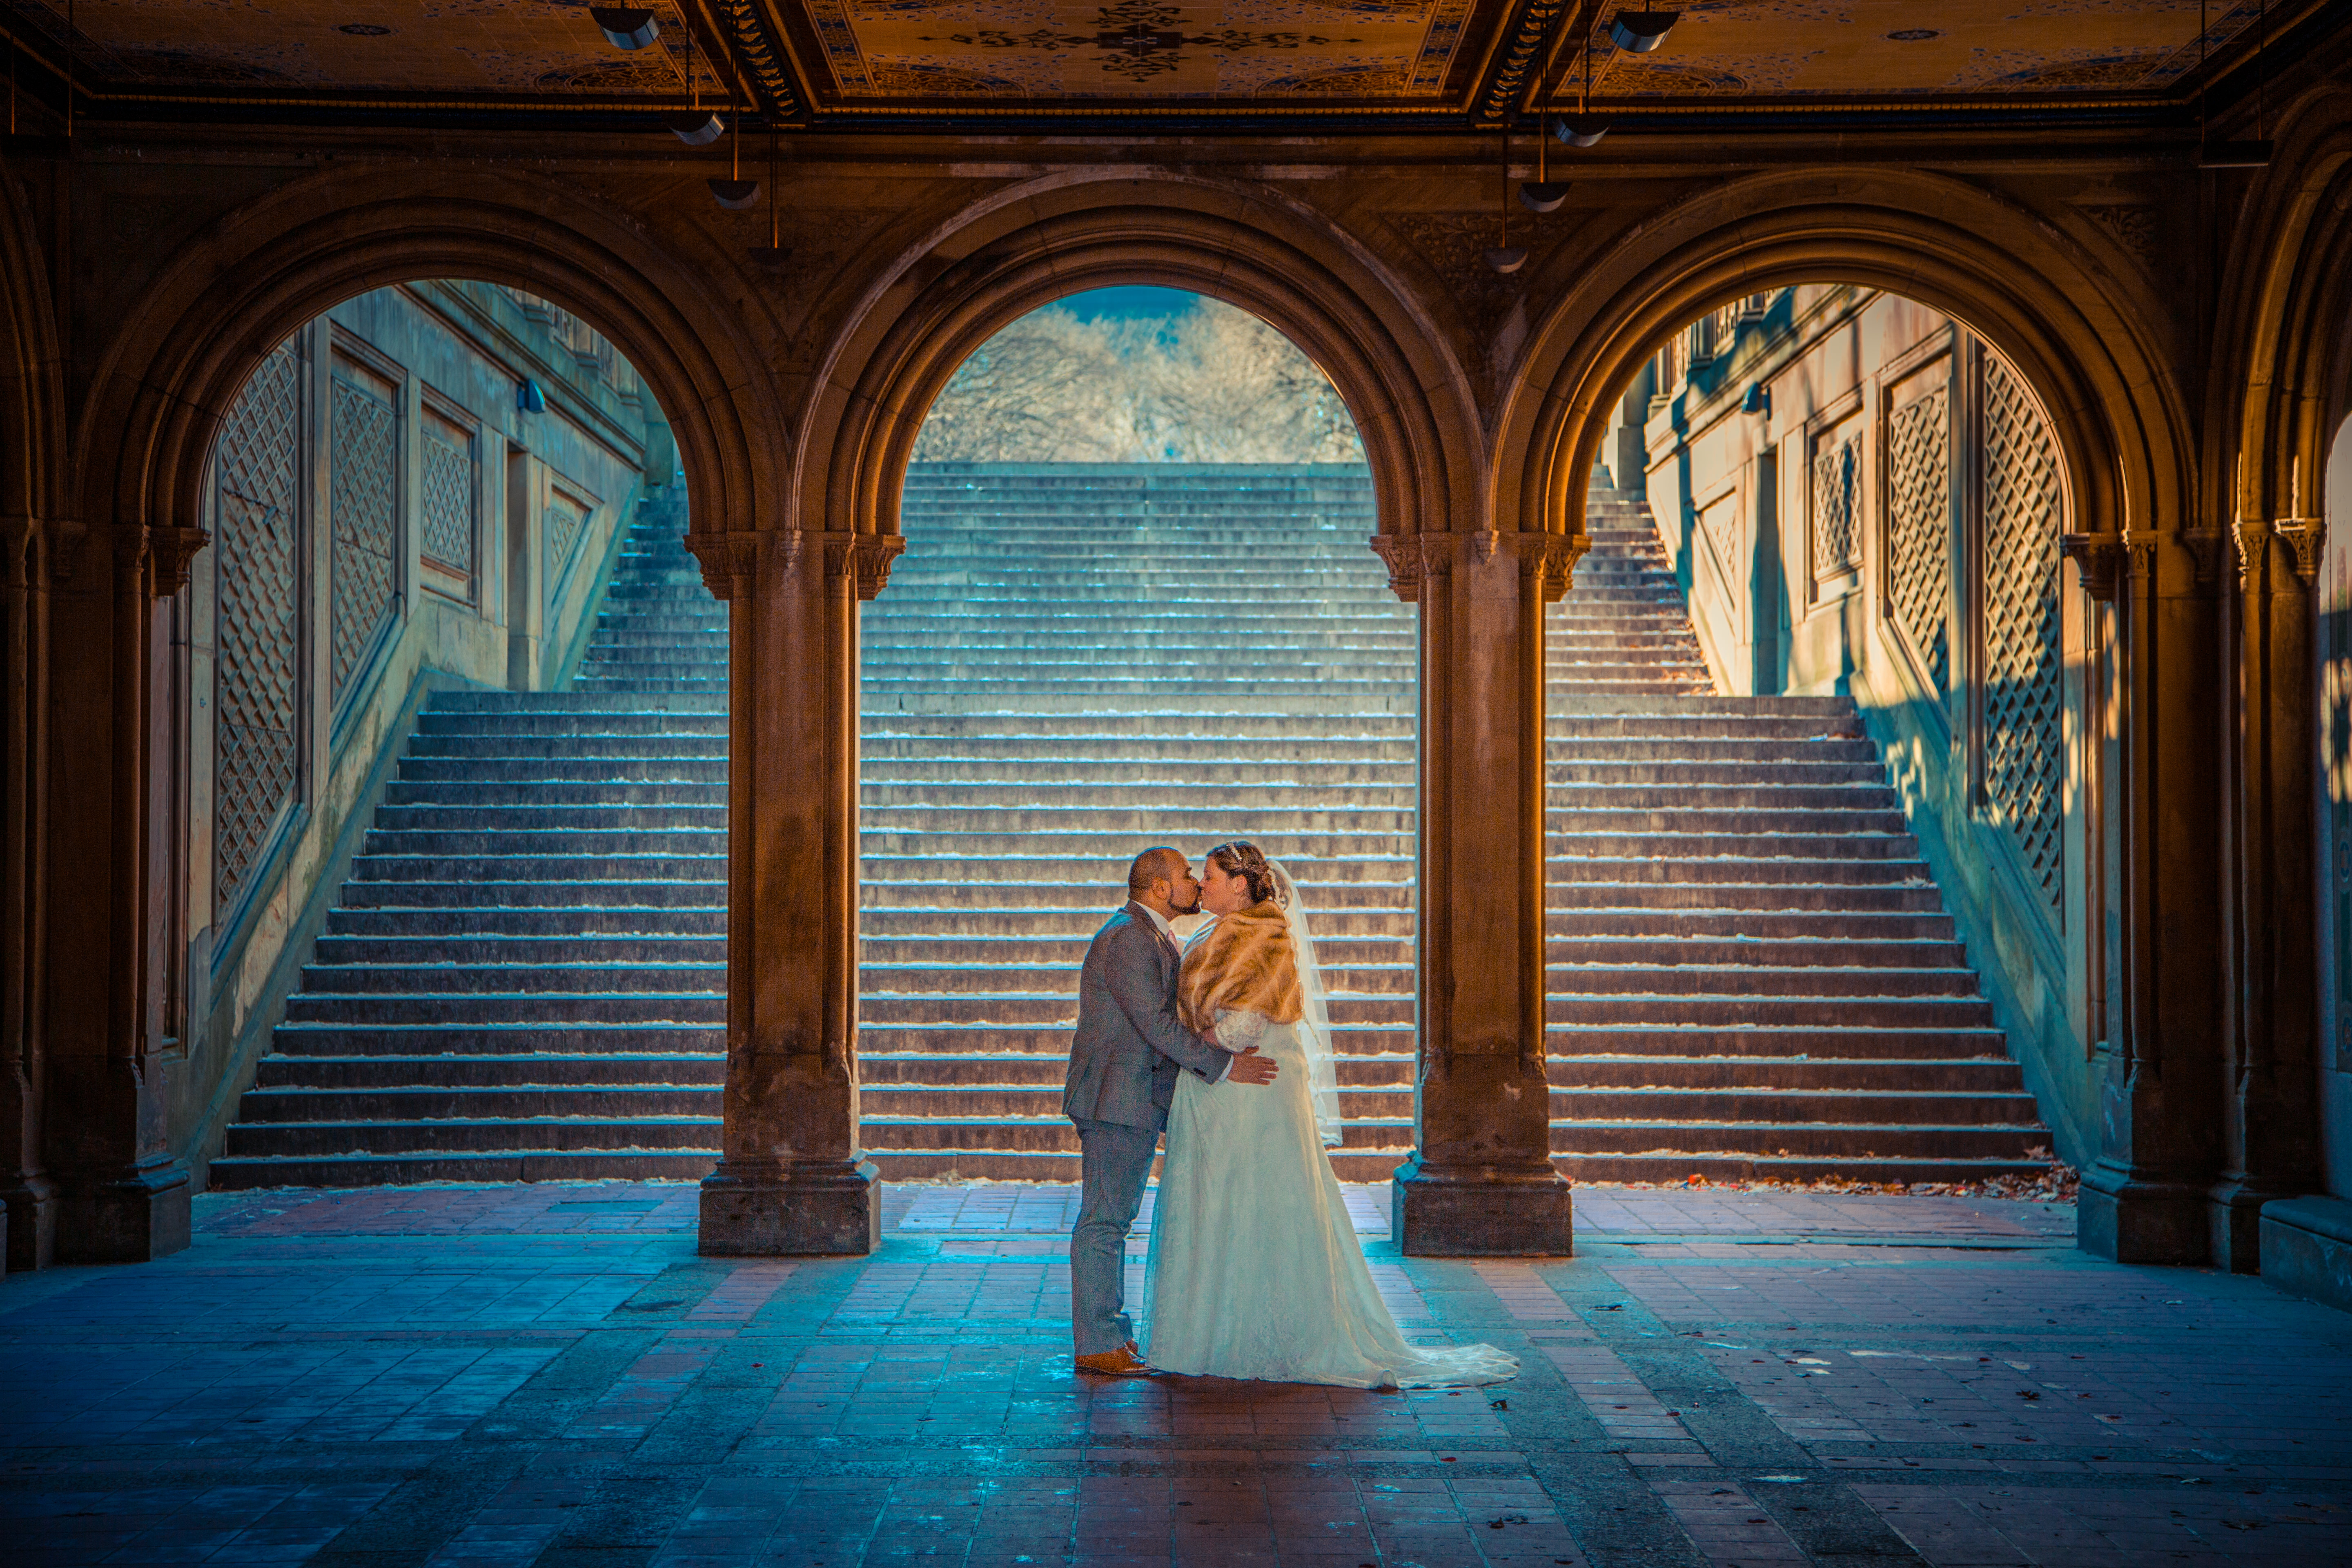 Wedding Photography in Central Park New York